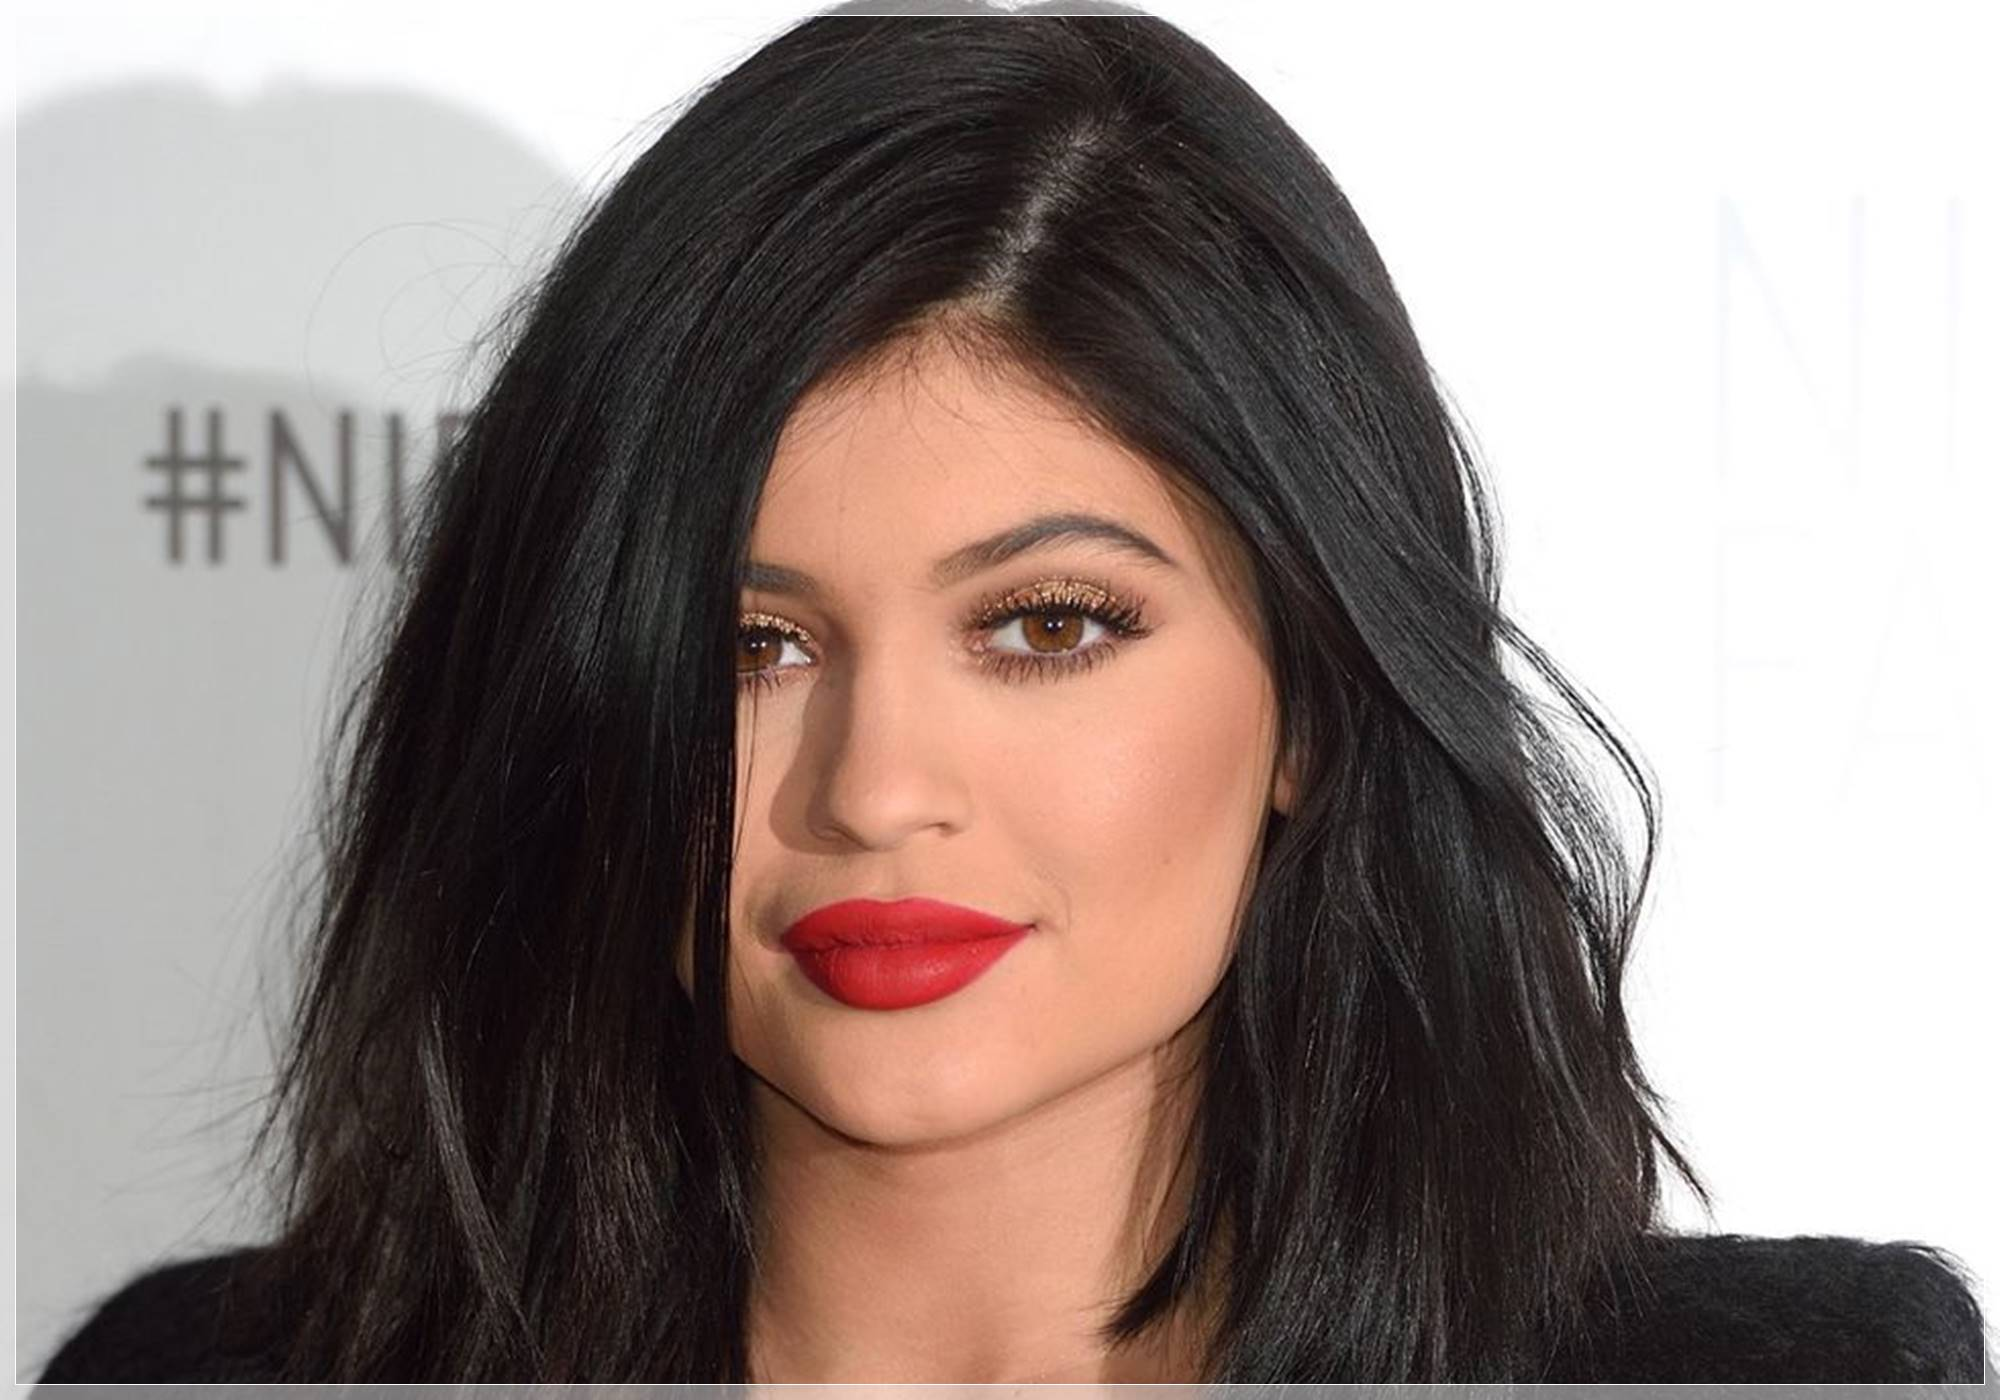 kylie jenner despues